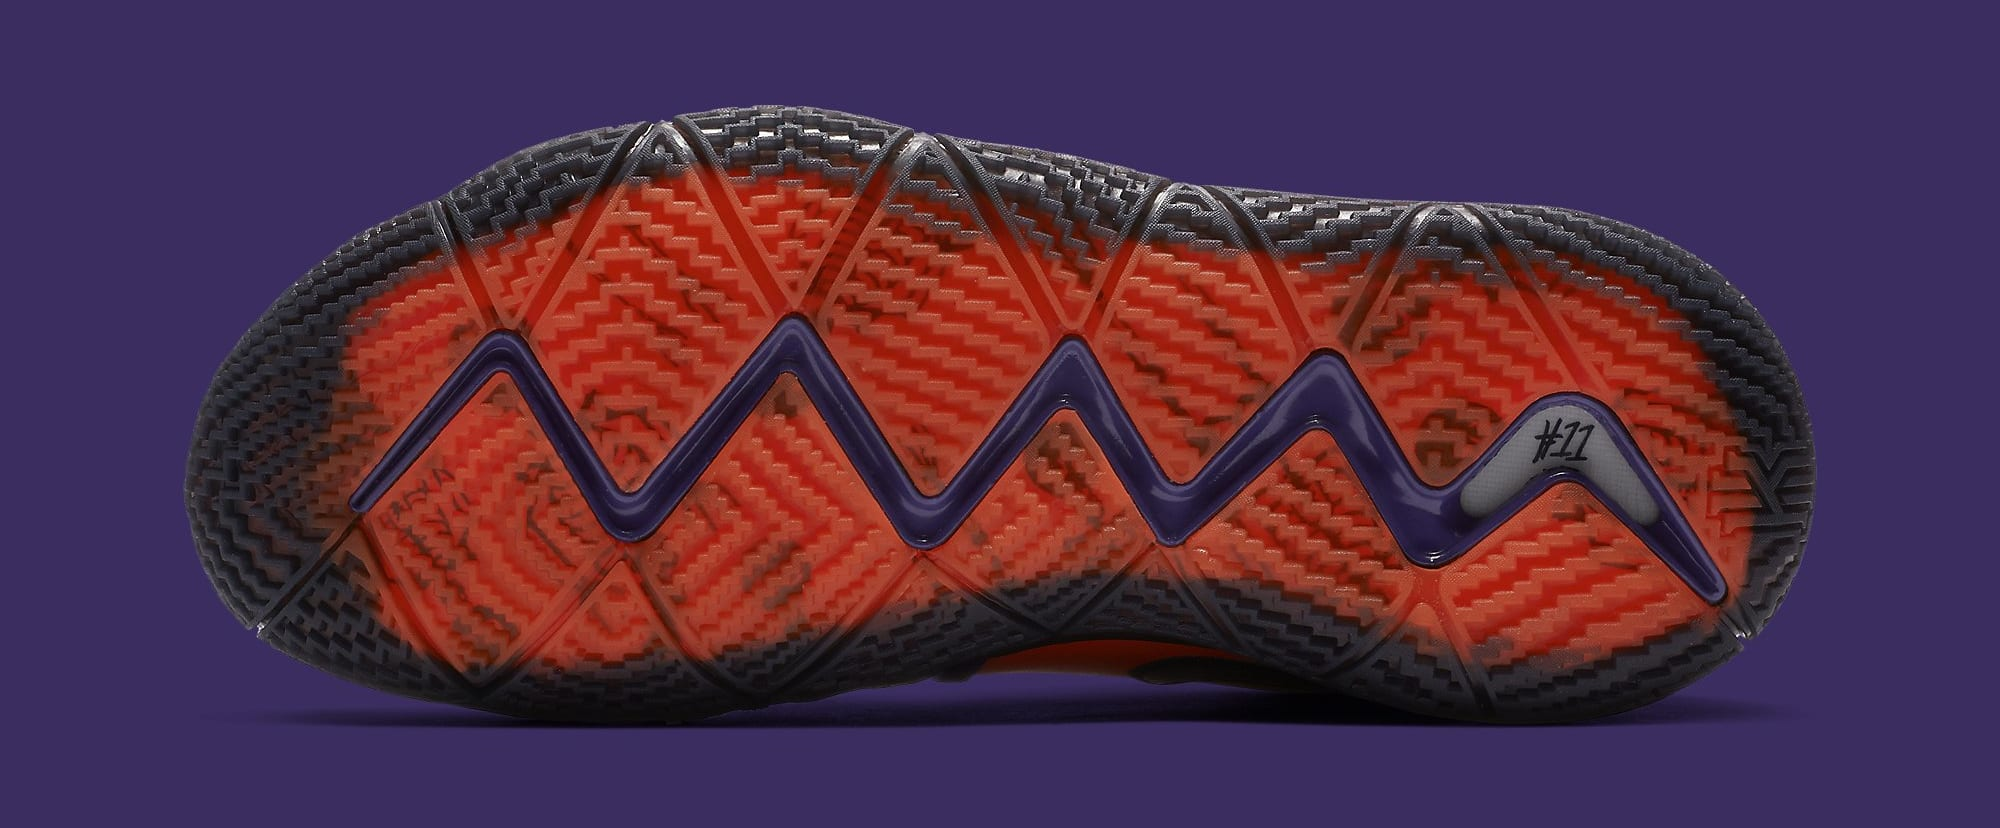 newest 9c69b 067e0 Nike Kyrie 4 'Day of the Dead' CI0278-800 Release Date ...